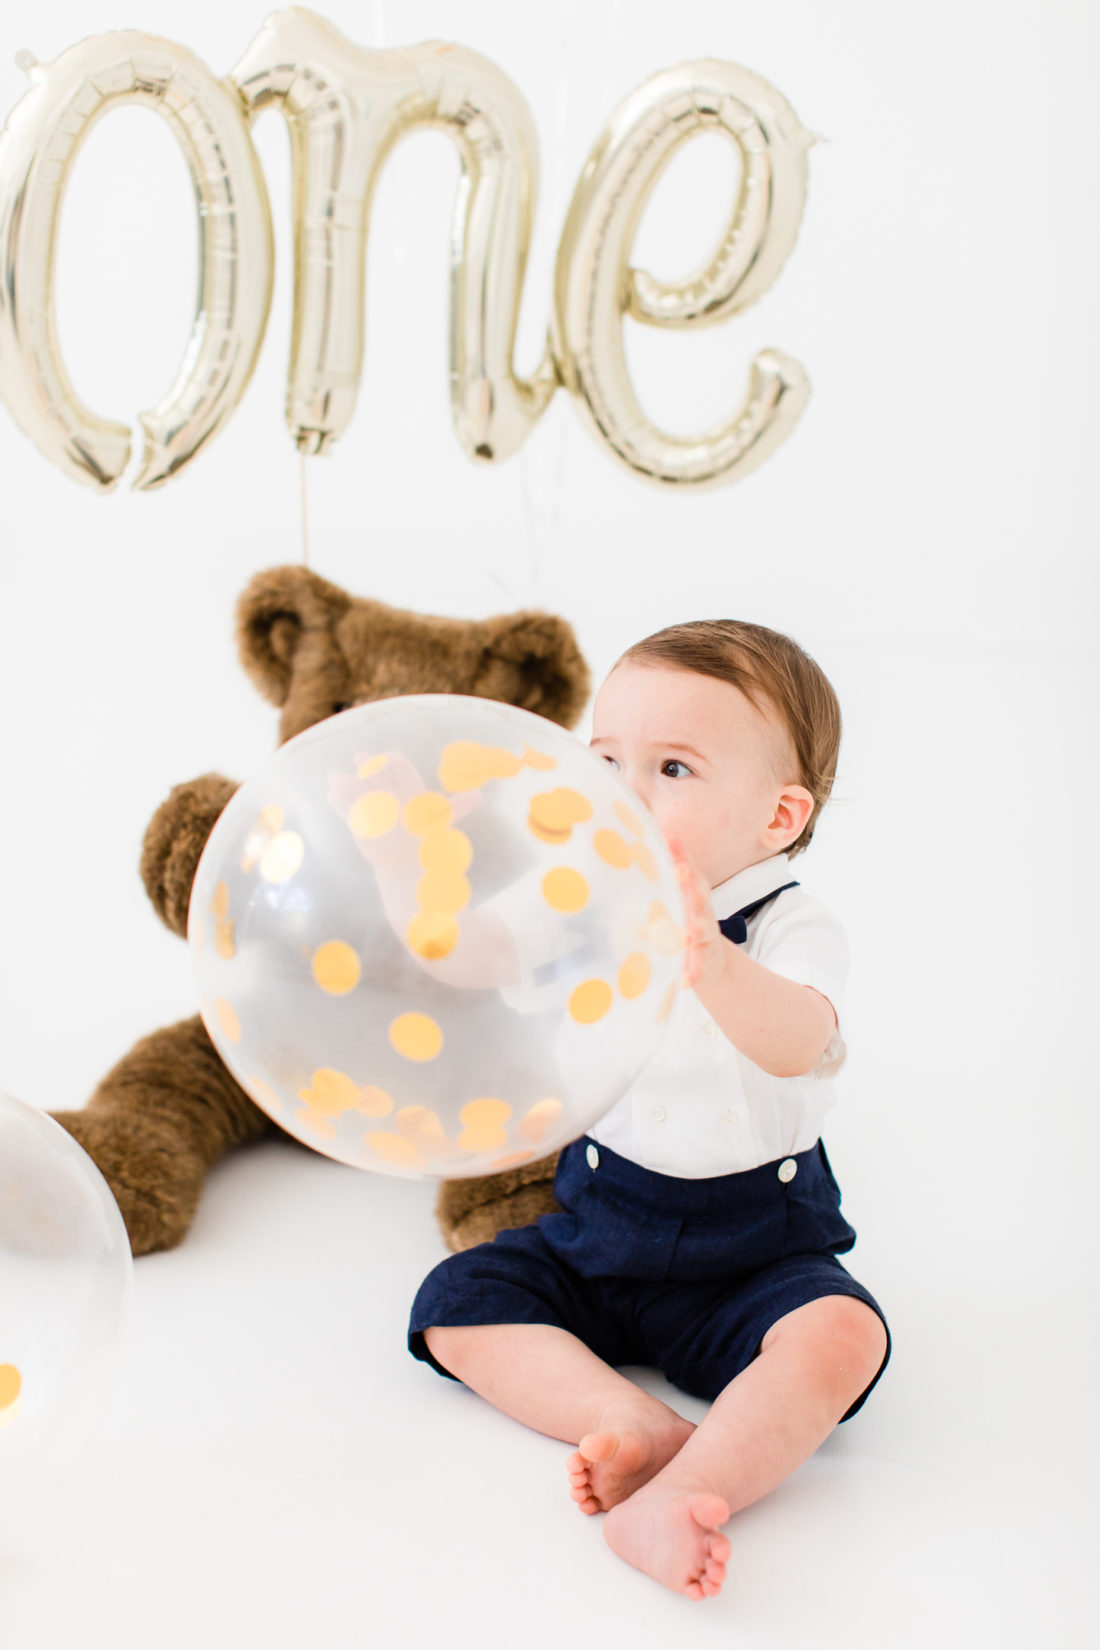 Major Martino holds a gold confetti filled balloon to celebrate his first birthday